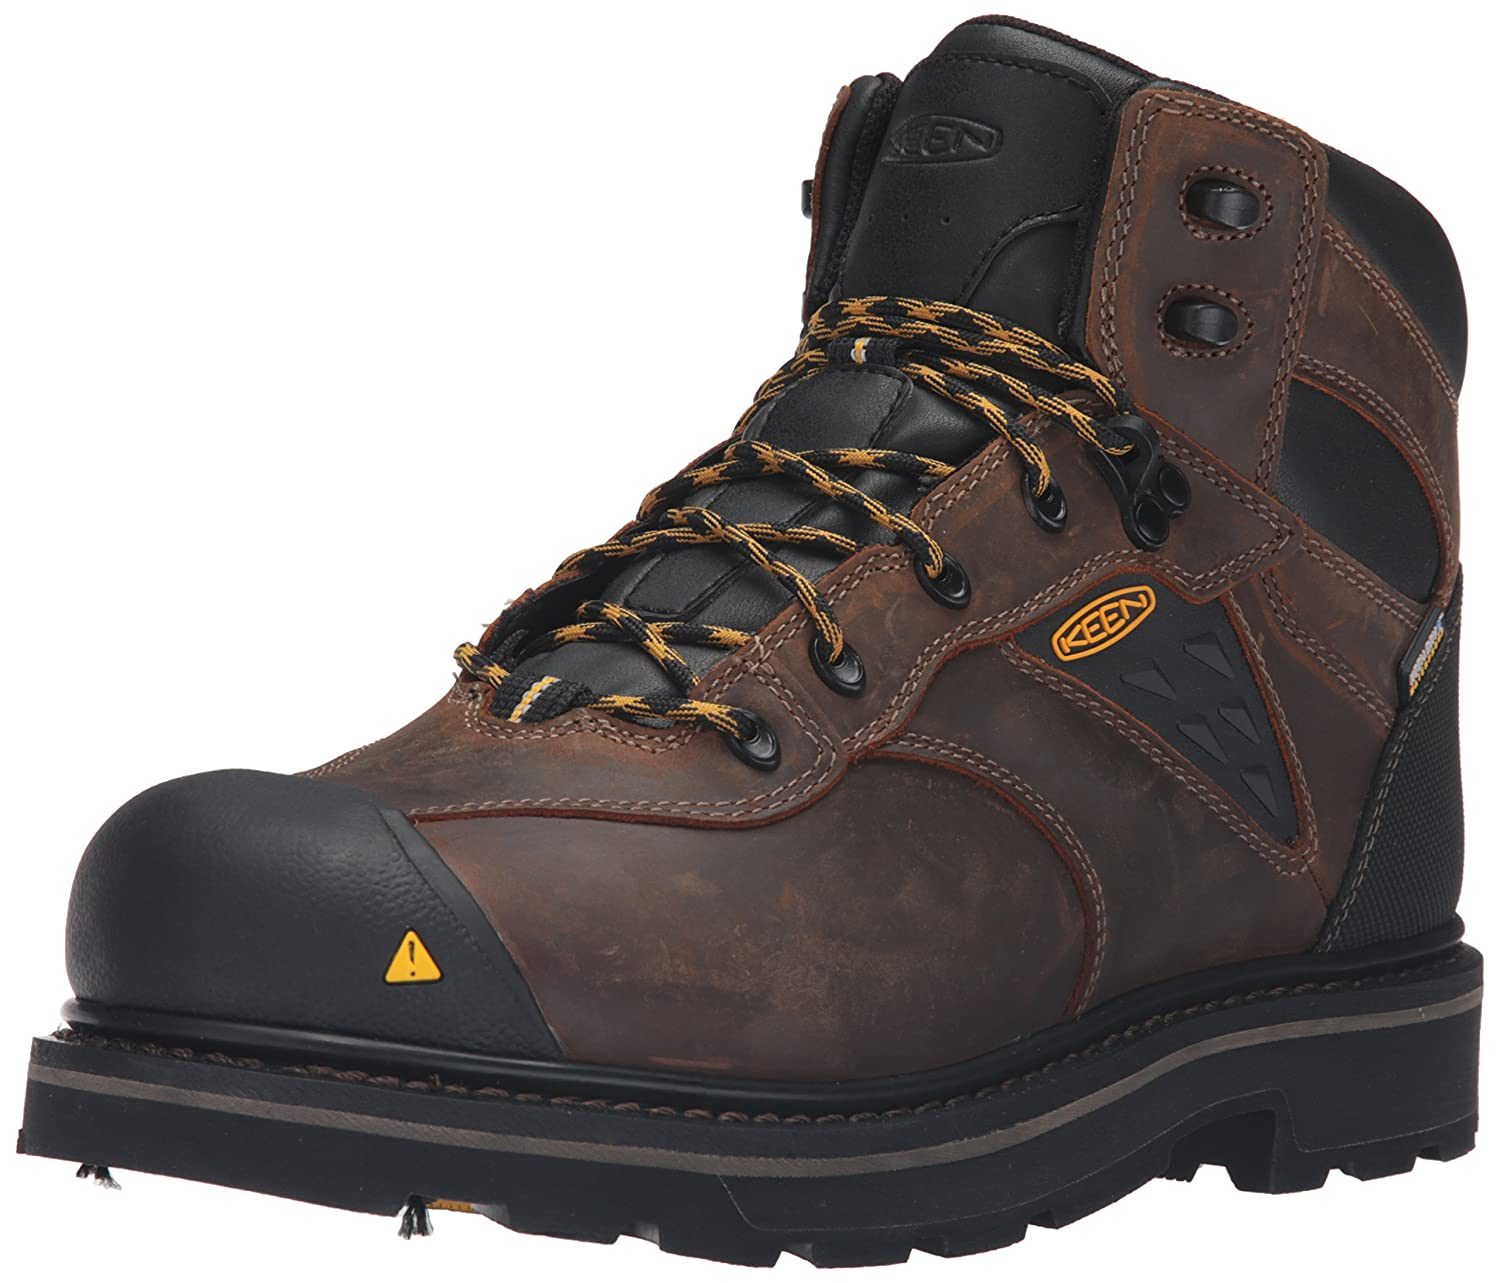 6995685ec0 Amazon.com | Keen Utility Men's Tacoma Soft Toe Waterproof Work Boot |  Industrial & Construction Boots